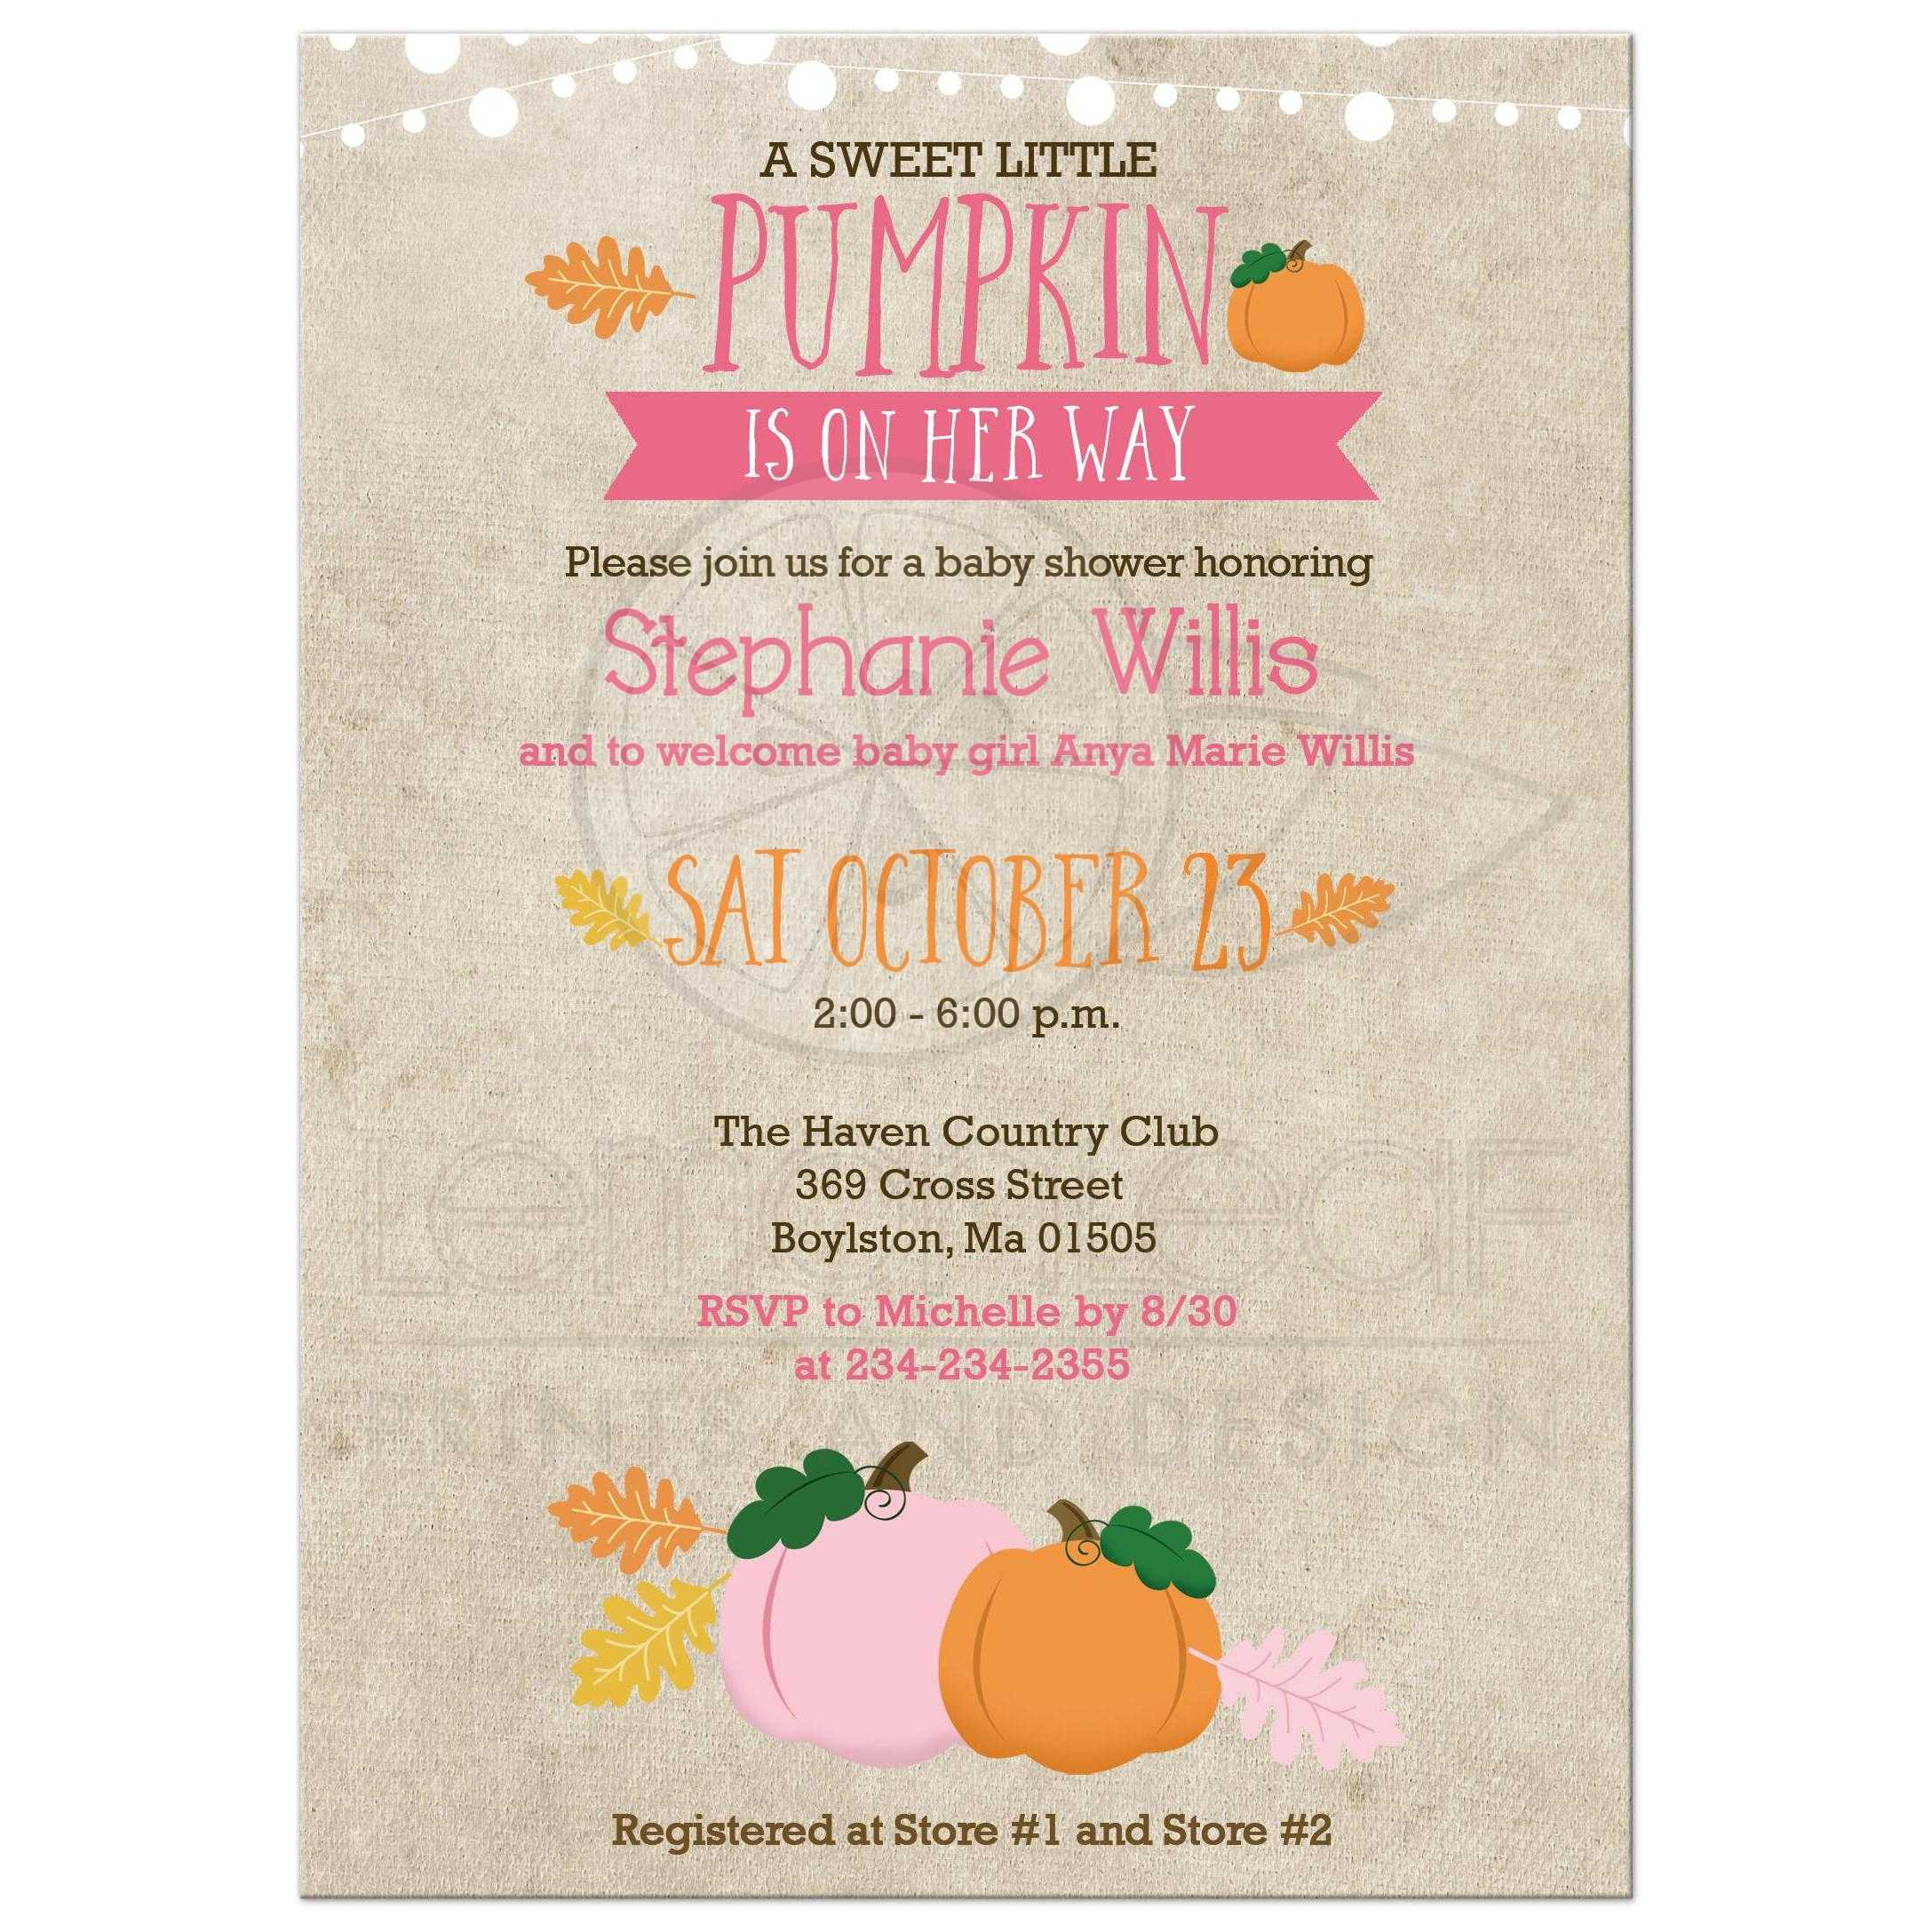 Little pumpkin baby shower invitation pink and orange pumpkin fall pumpkin girl baby shower invitations fall autumn filmwisefo